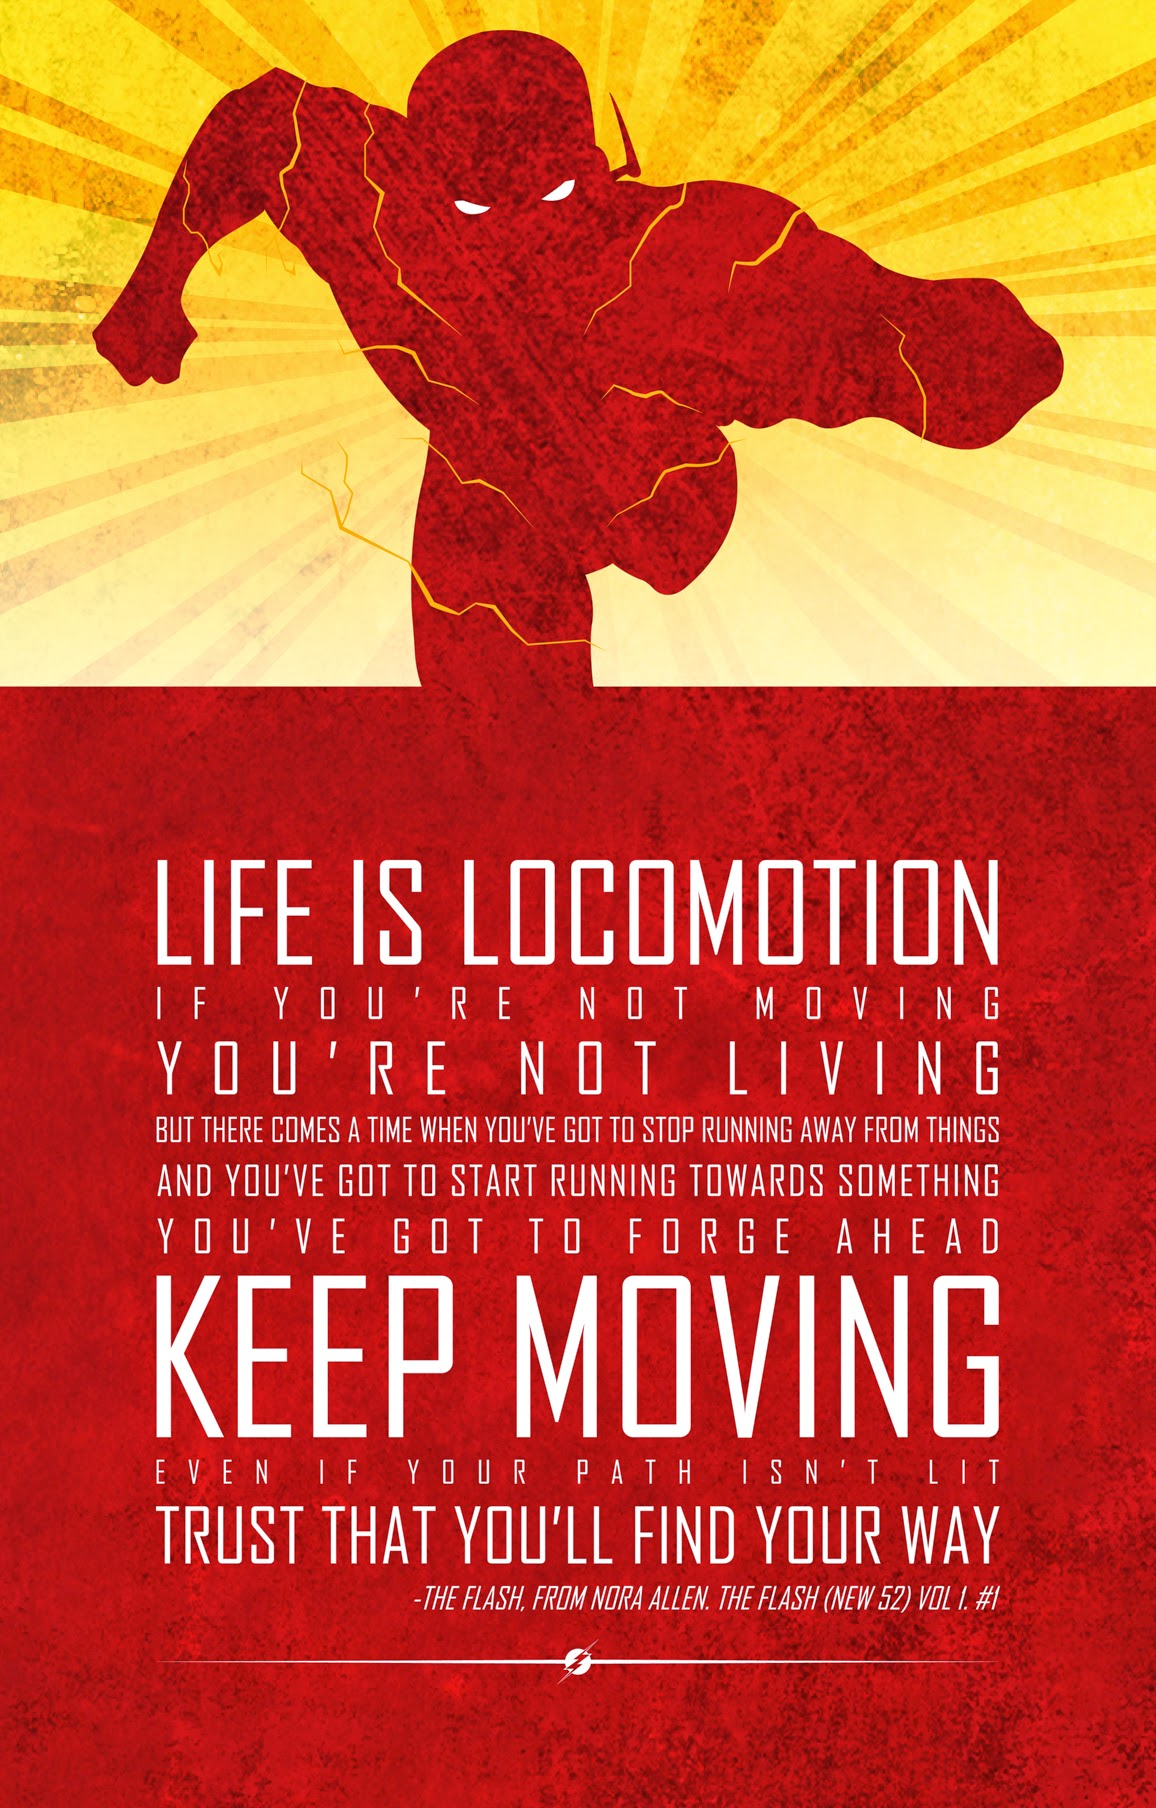 Keep Moving The Flash Tv Daily Quotes Sayings Pictures